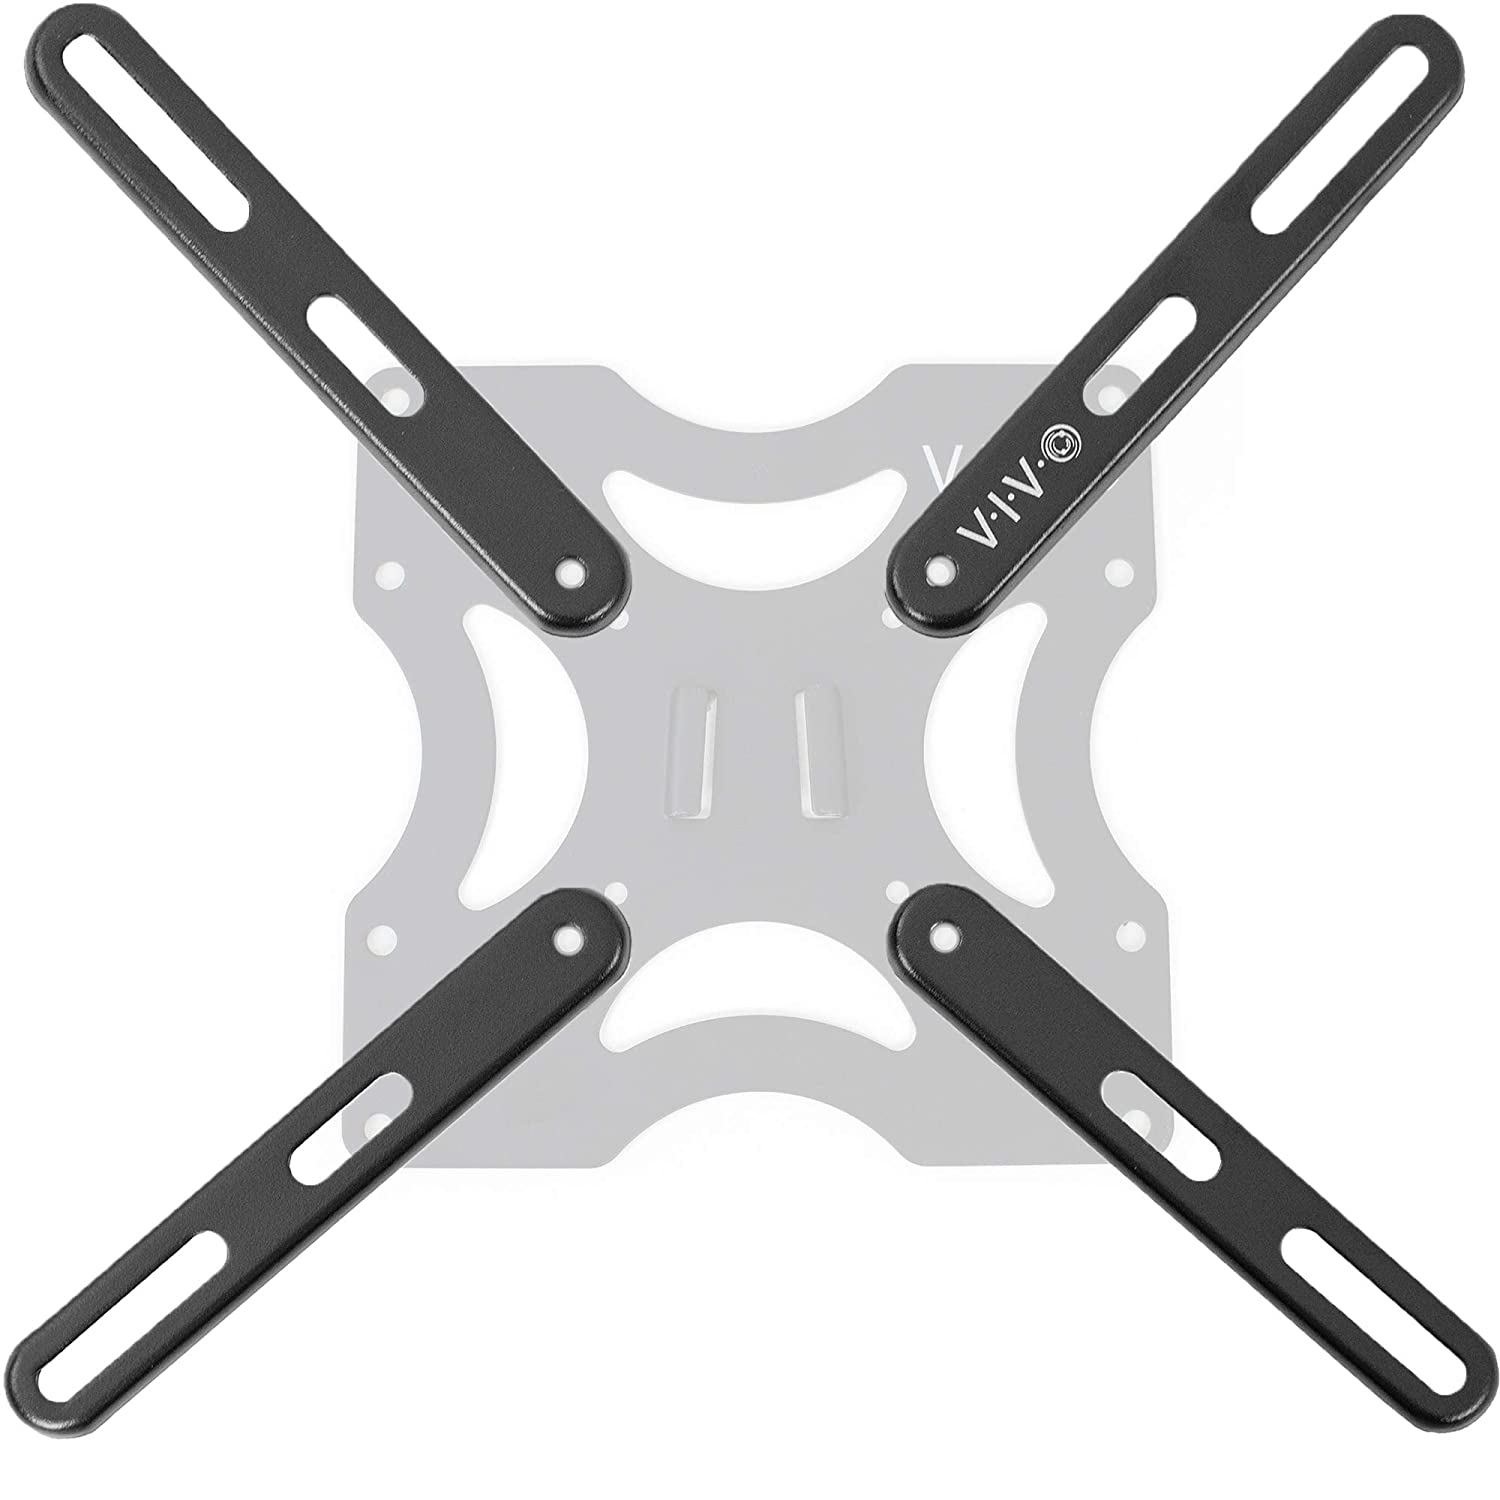 VIVO Steel VESA Extension Mount Adapter Brackets for Screens 32 to 55 inch LCD LED TV | Conversion Plate Kit for VESA up to 400x400mm (MOUNT-AD400B)